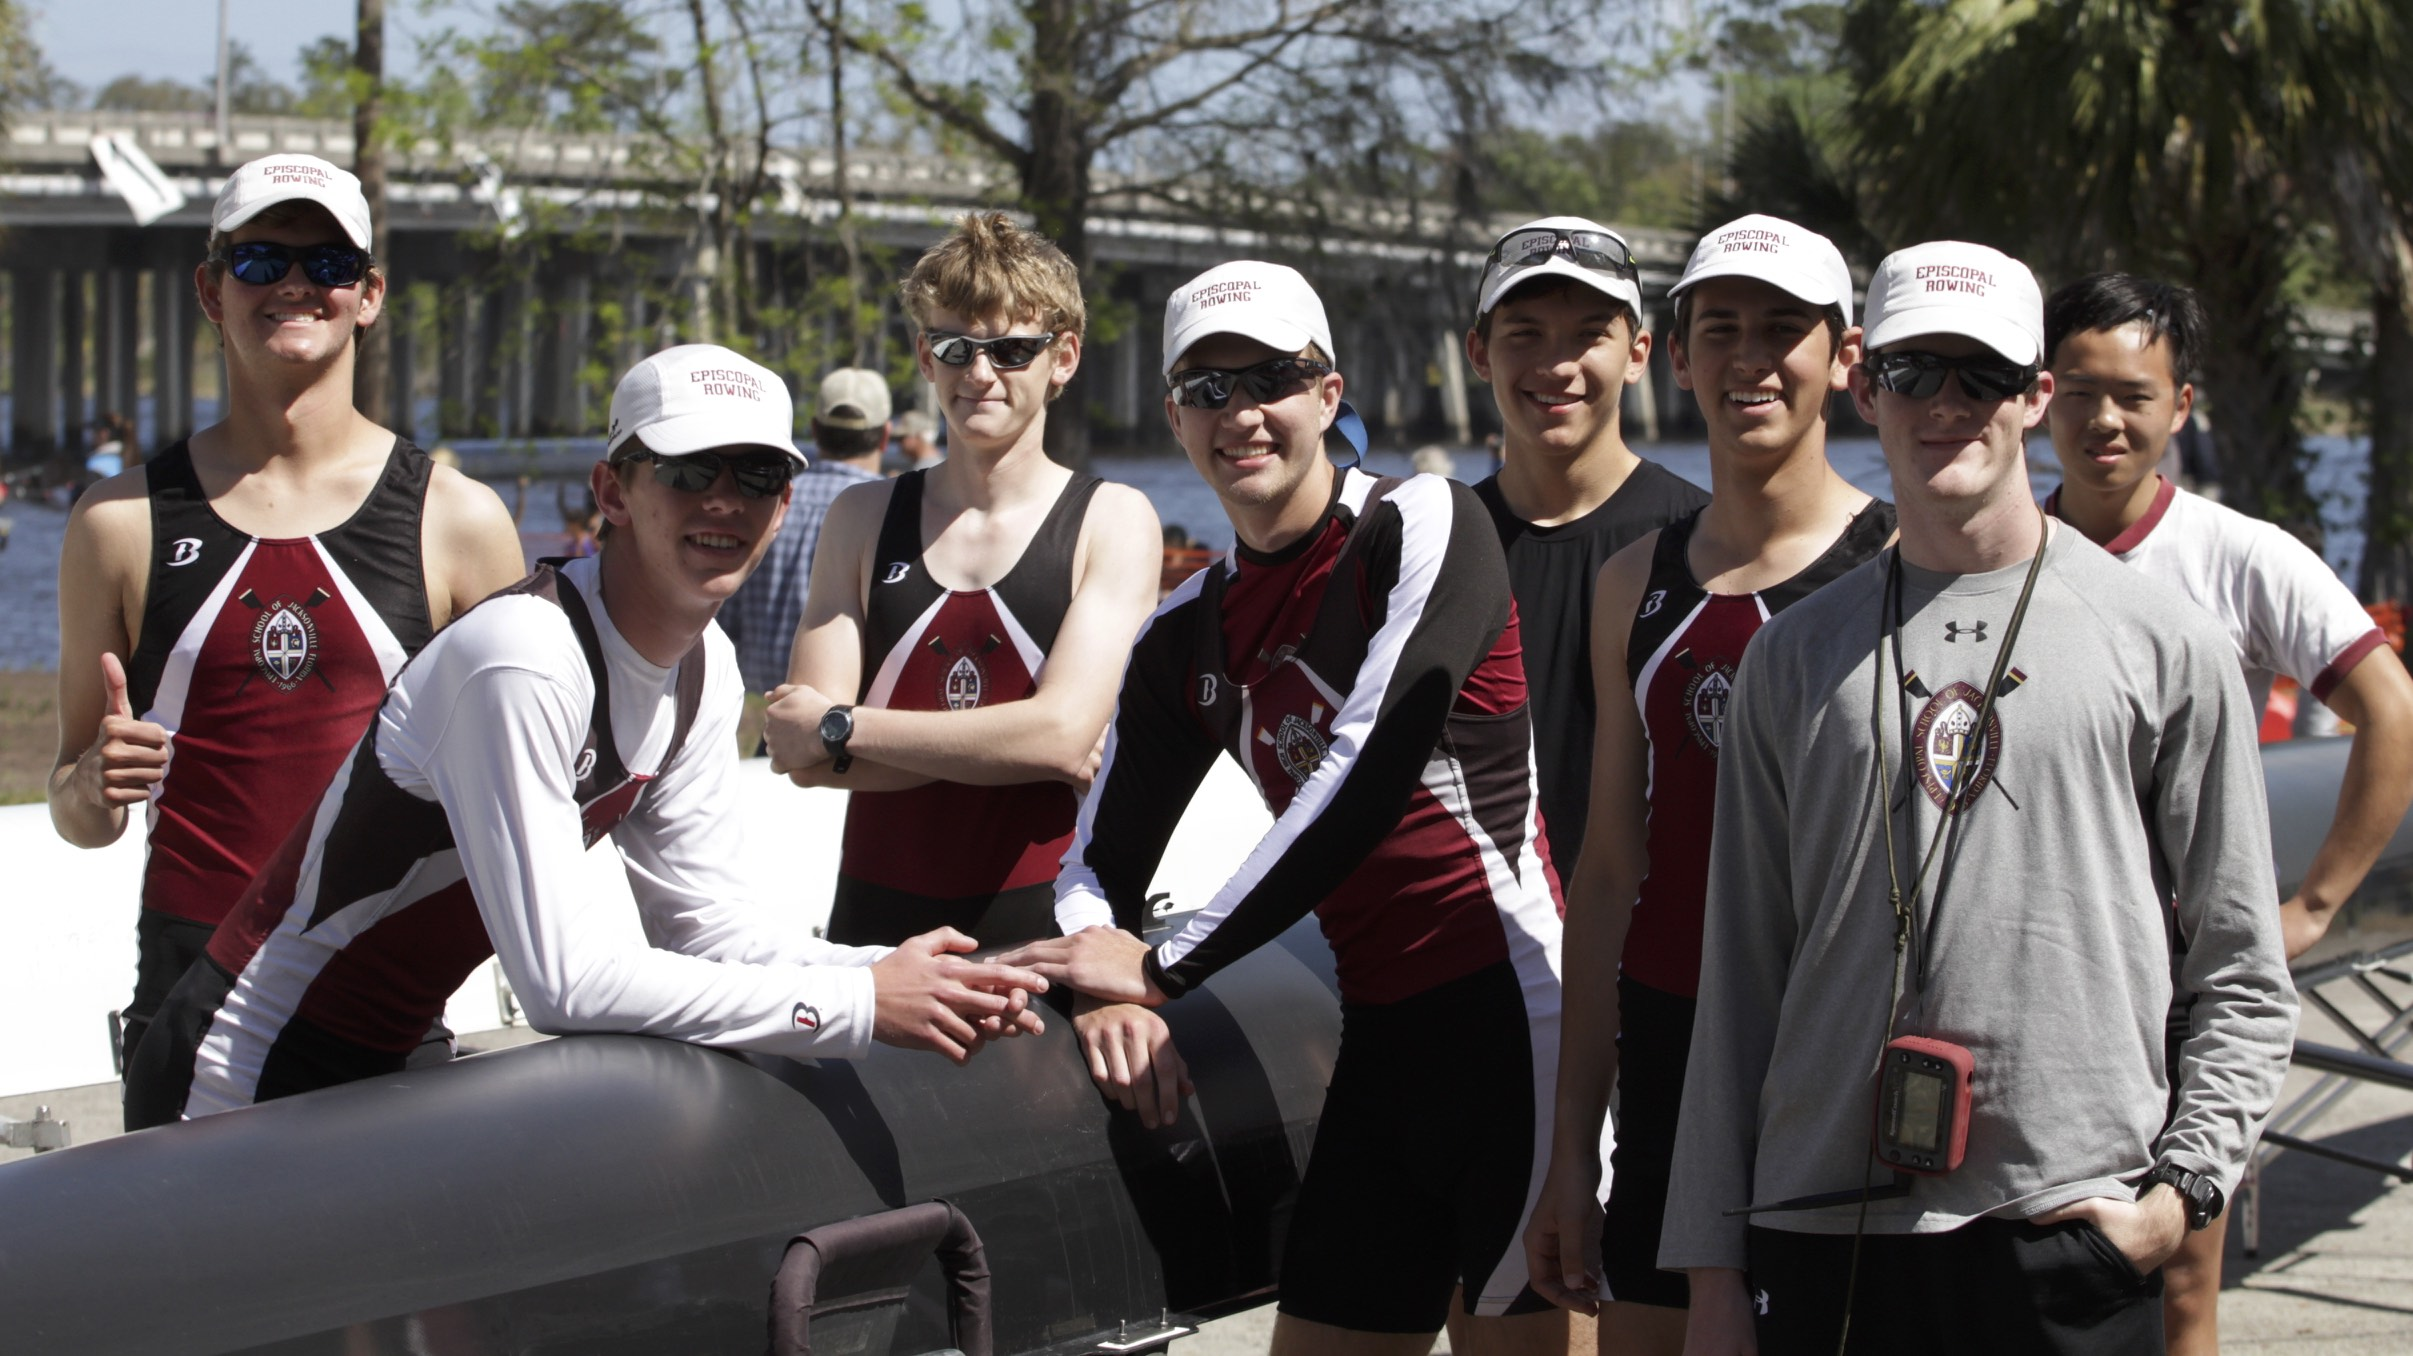 Episcopal Rowing